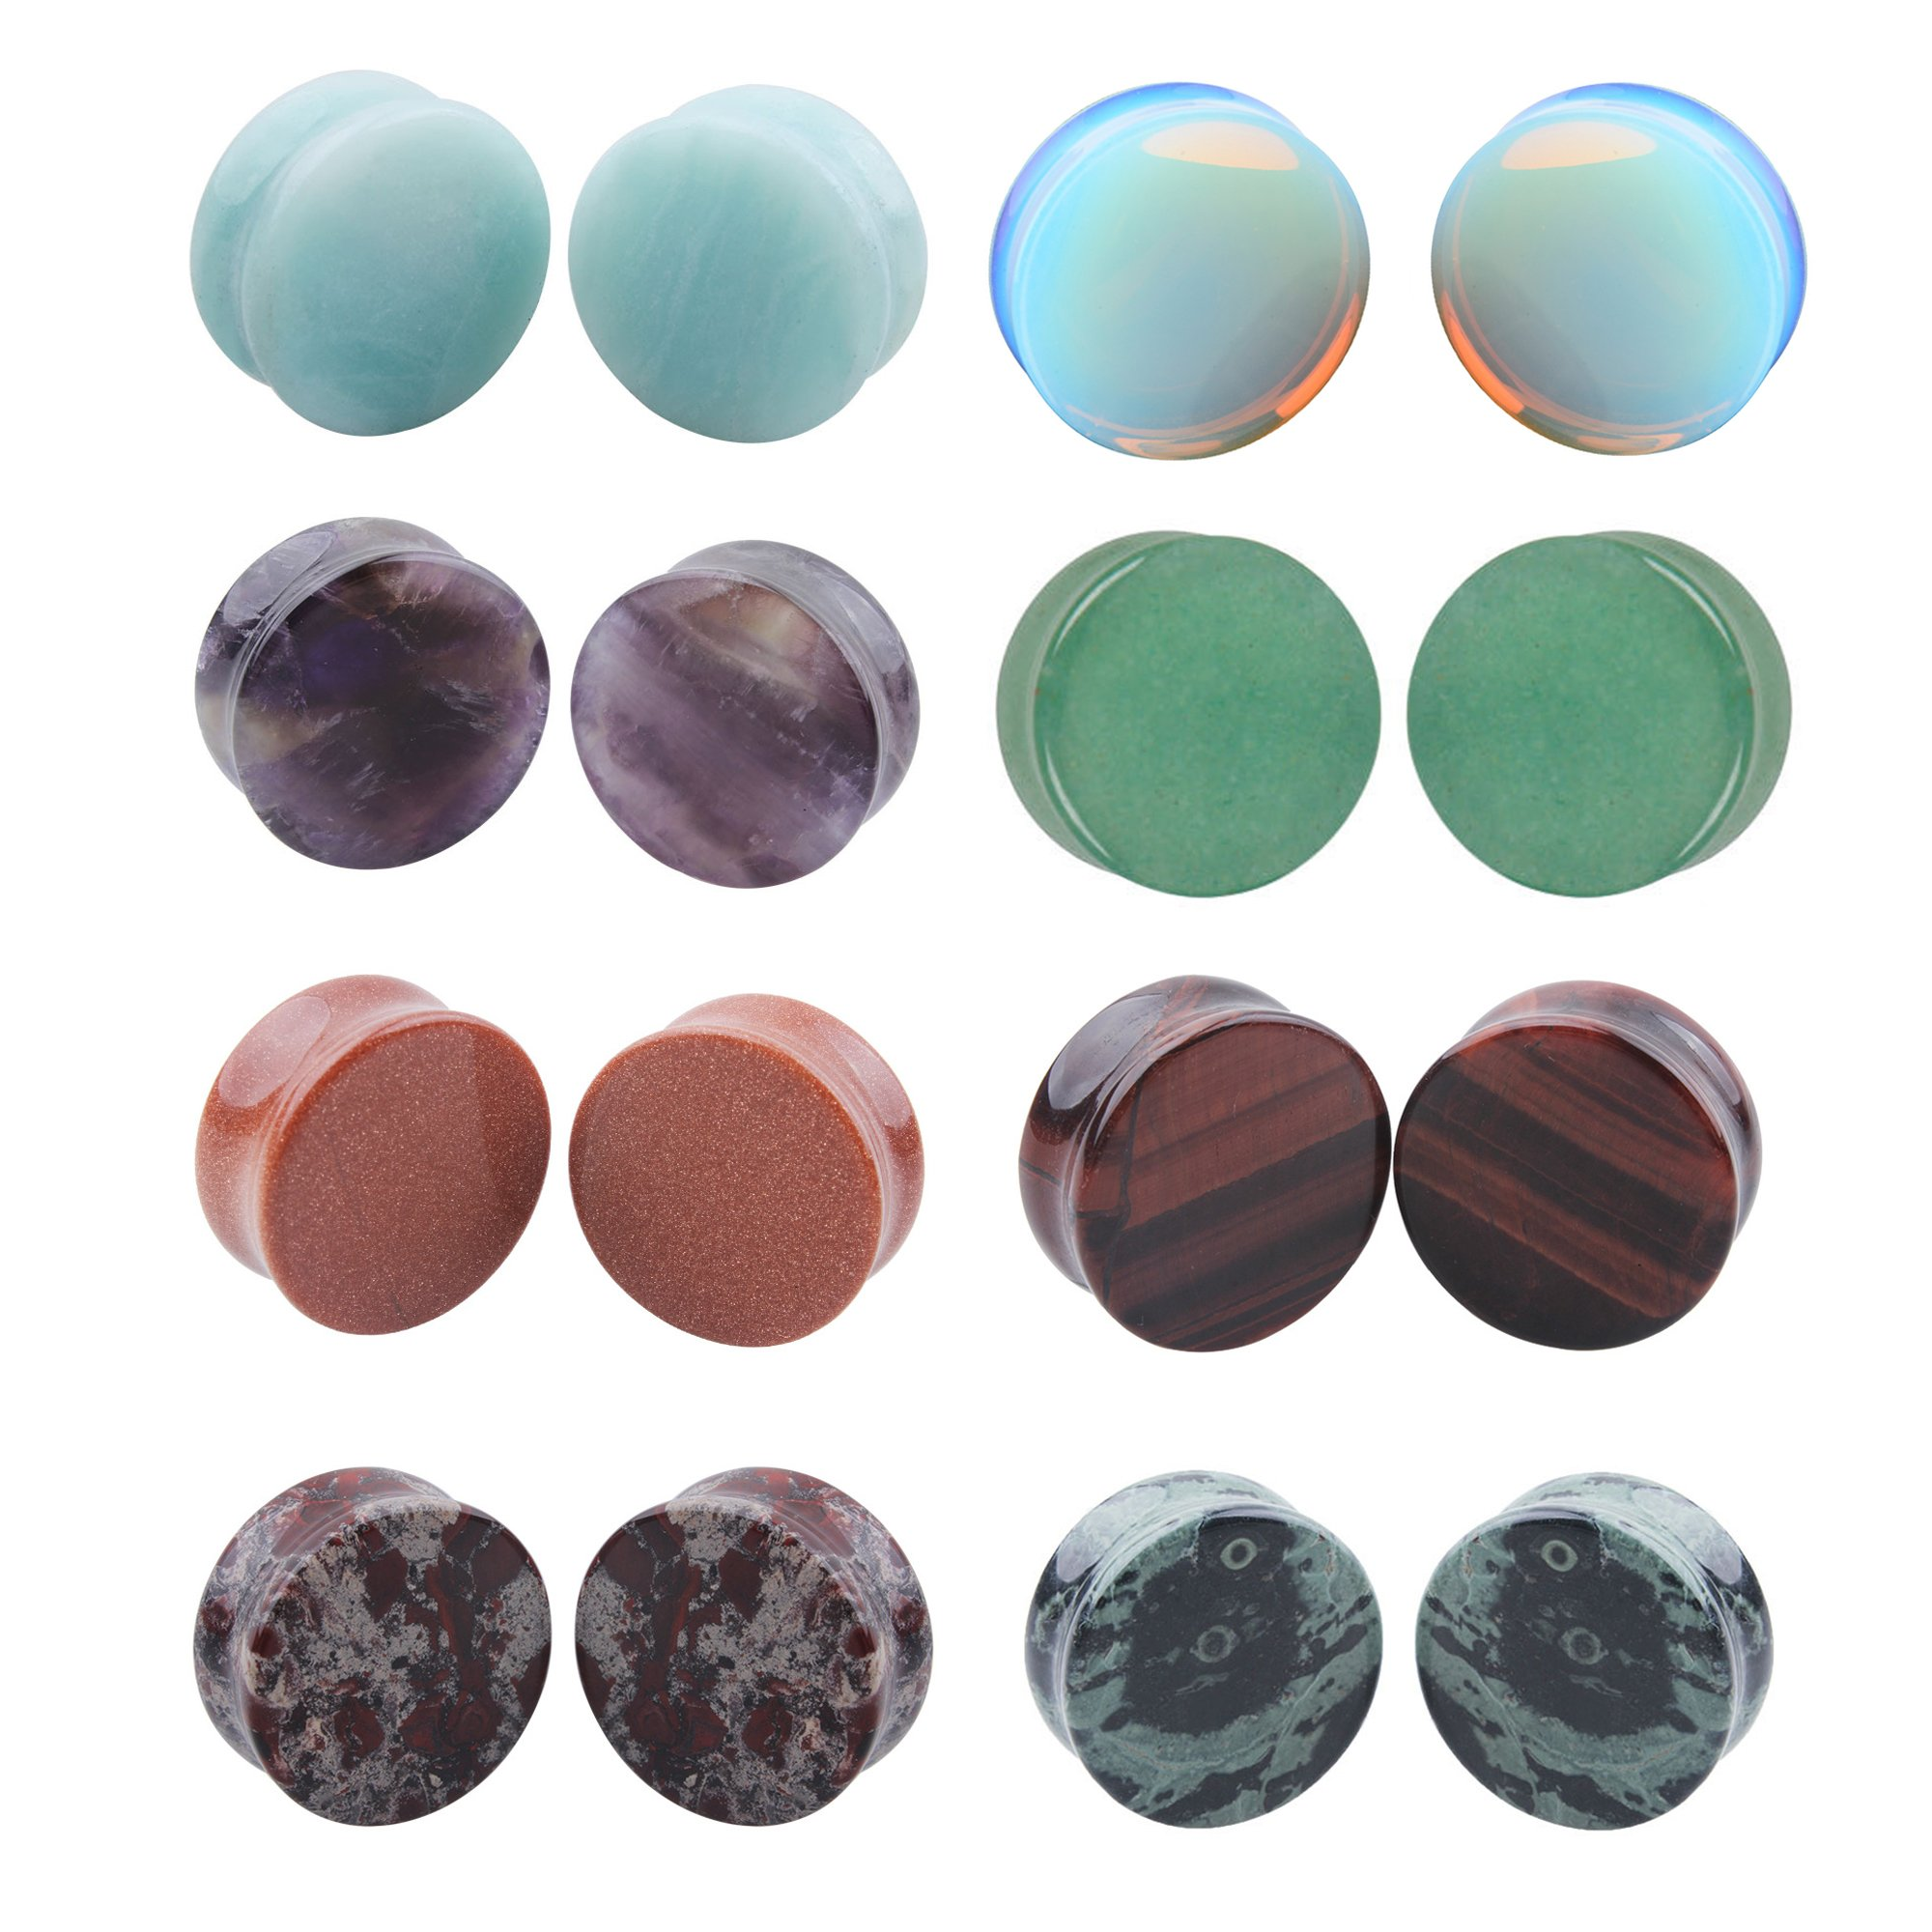 8 Pairs Natural Mixed Stone Ear Plugs Piercing Set Double Flared Saddle Expander Body Jewelry (19mm=3/4'')